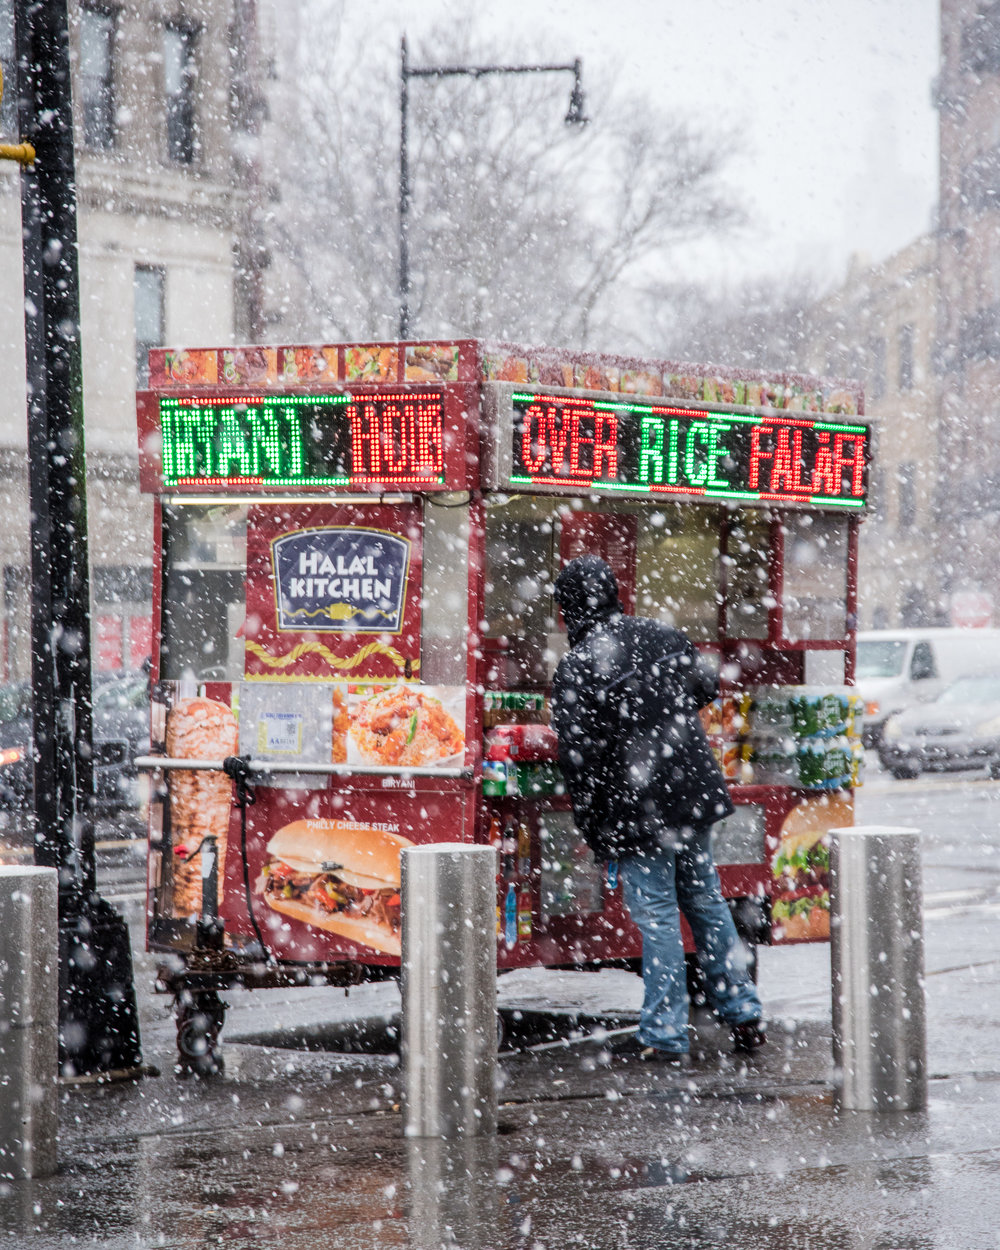 Snow over rice falafel. 2018.